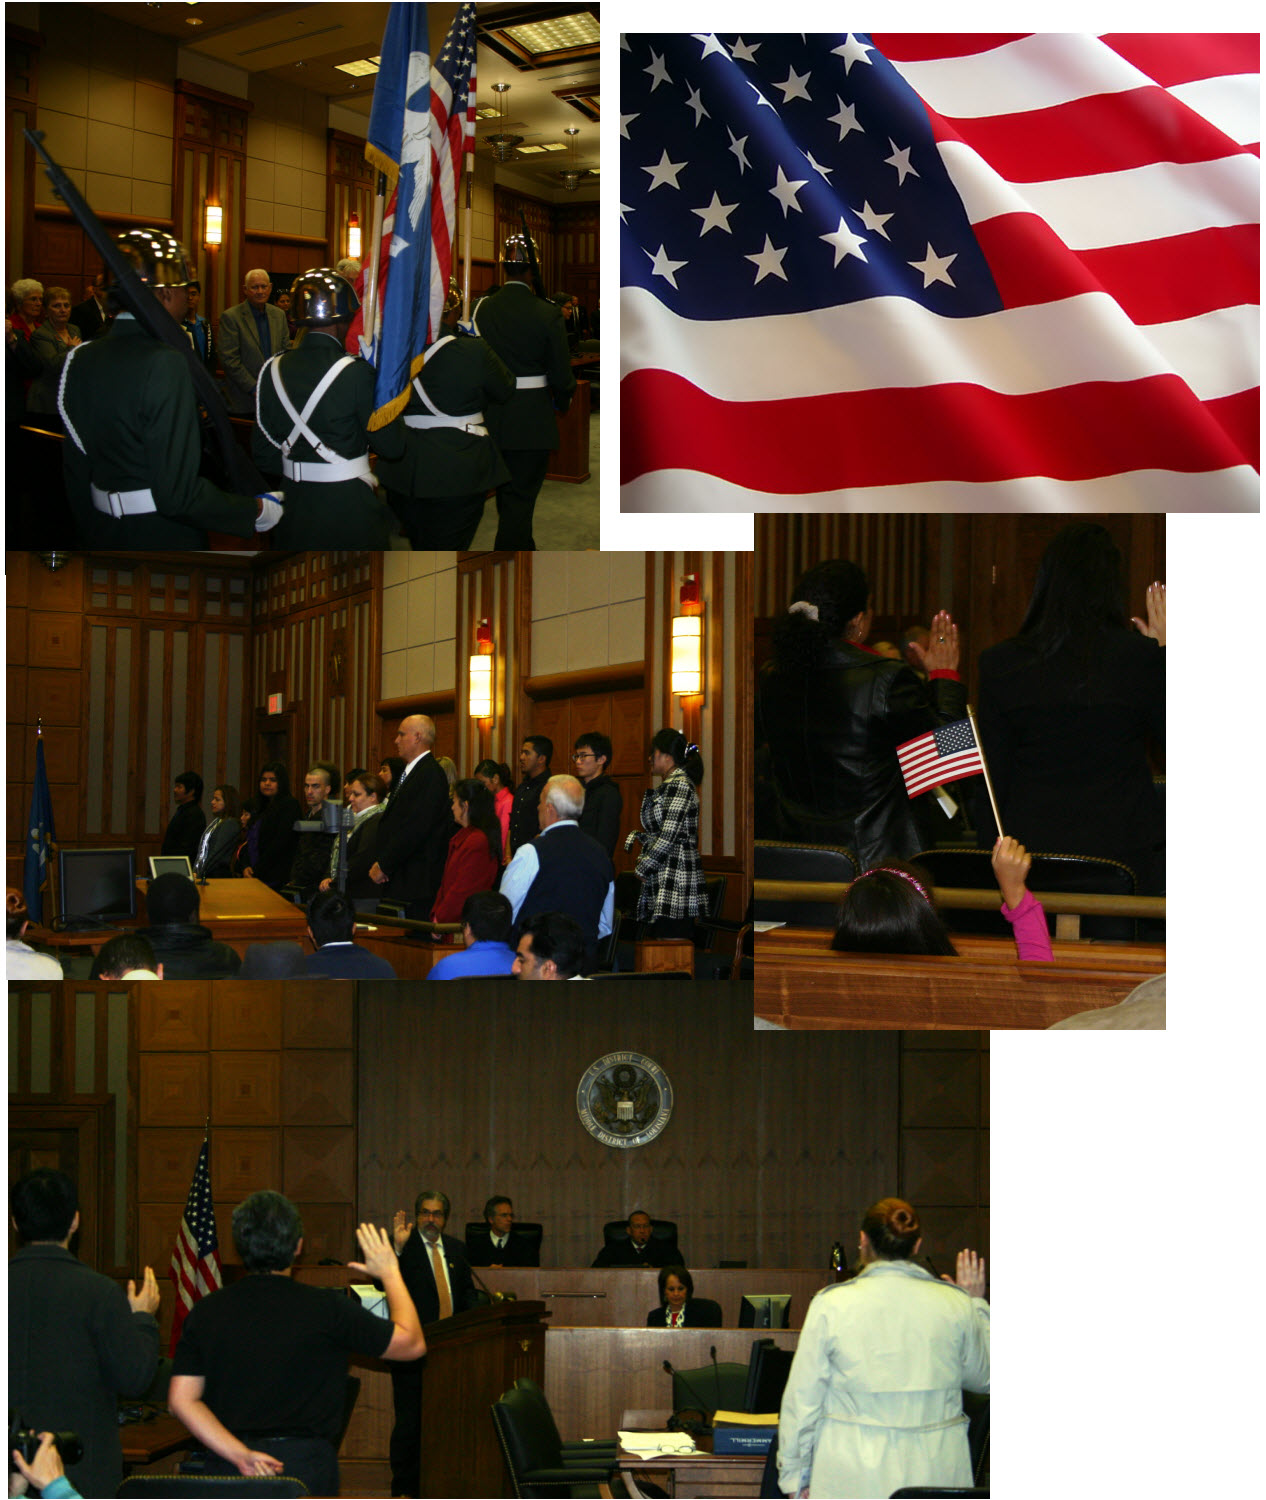 Naturalization images November 18, 2011